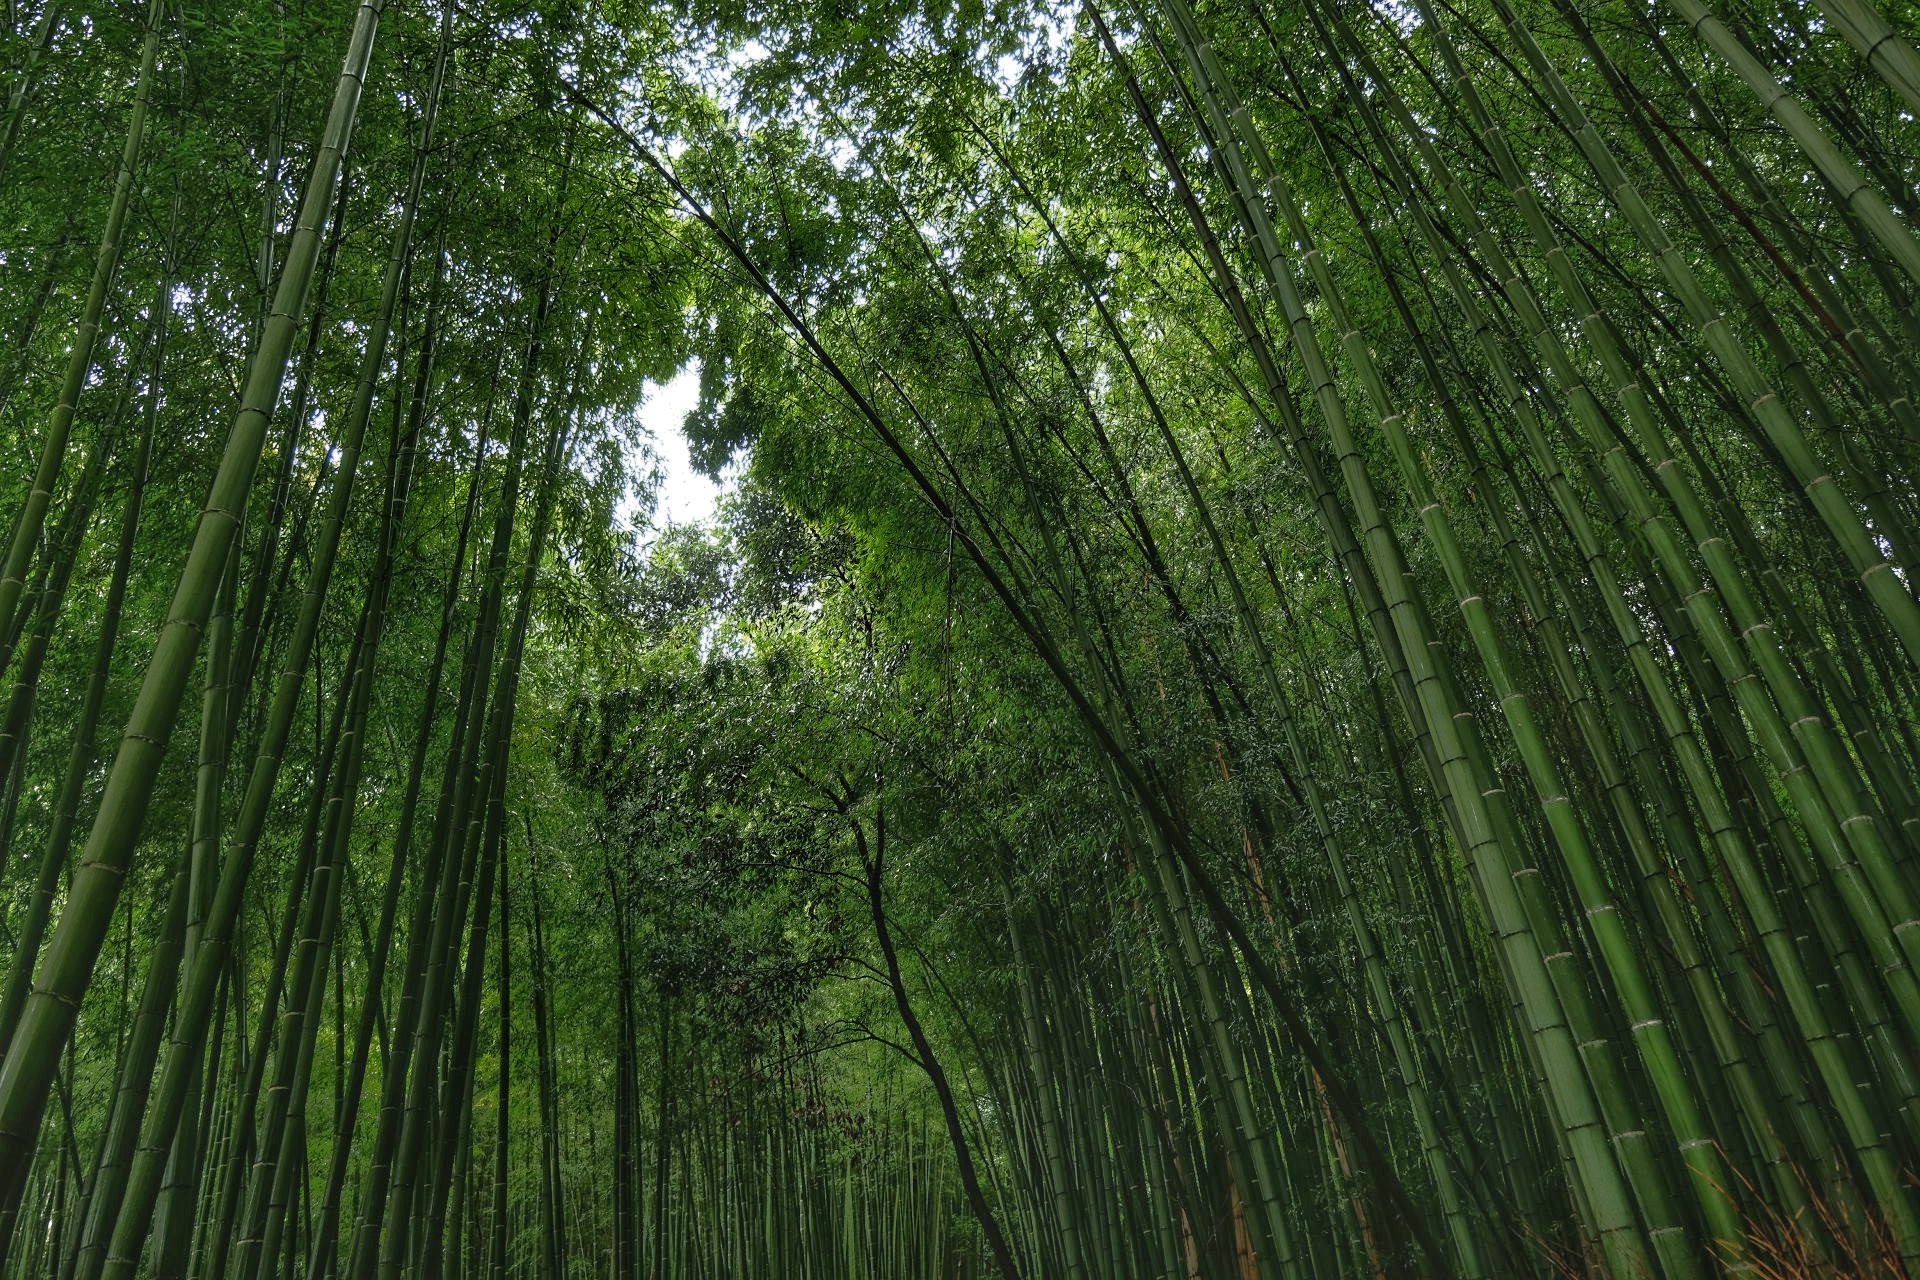 Bamboo Forrest.